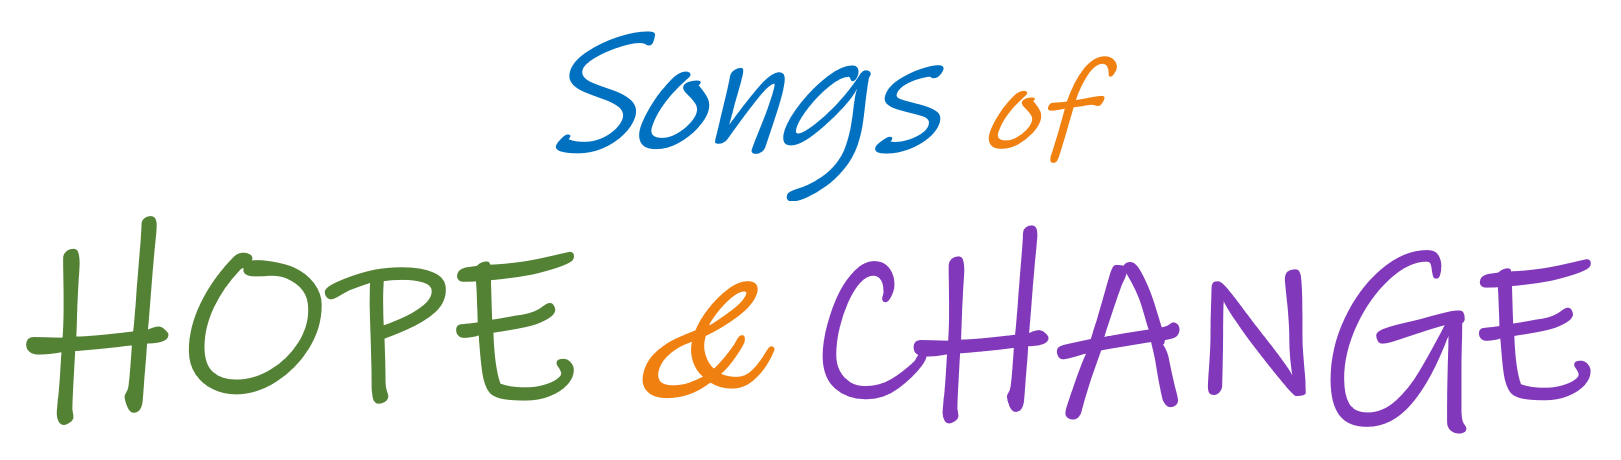 Songs of Hope and Change LOGO May Virtual Concert 2021